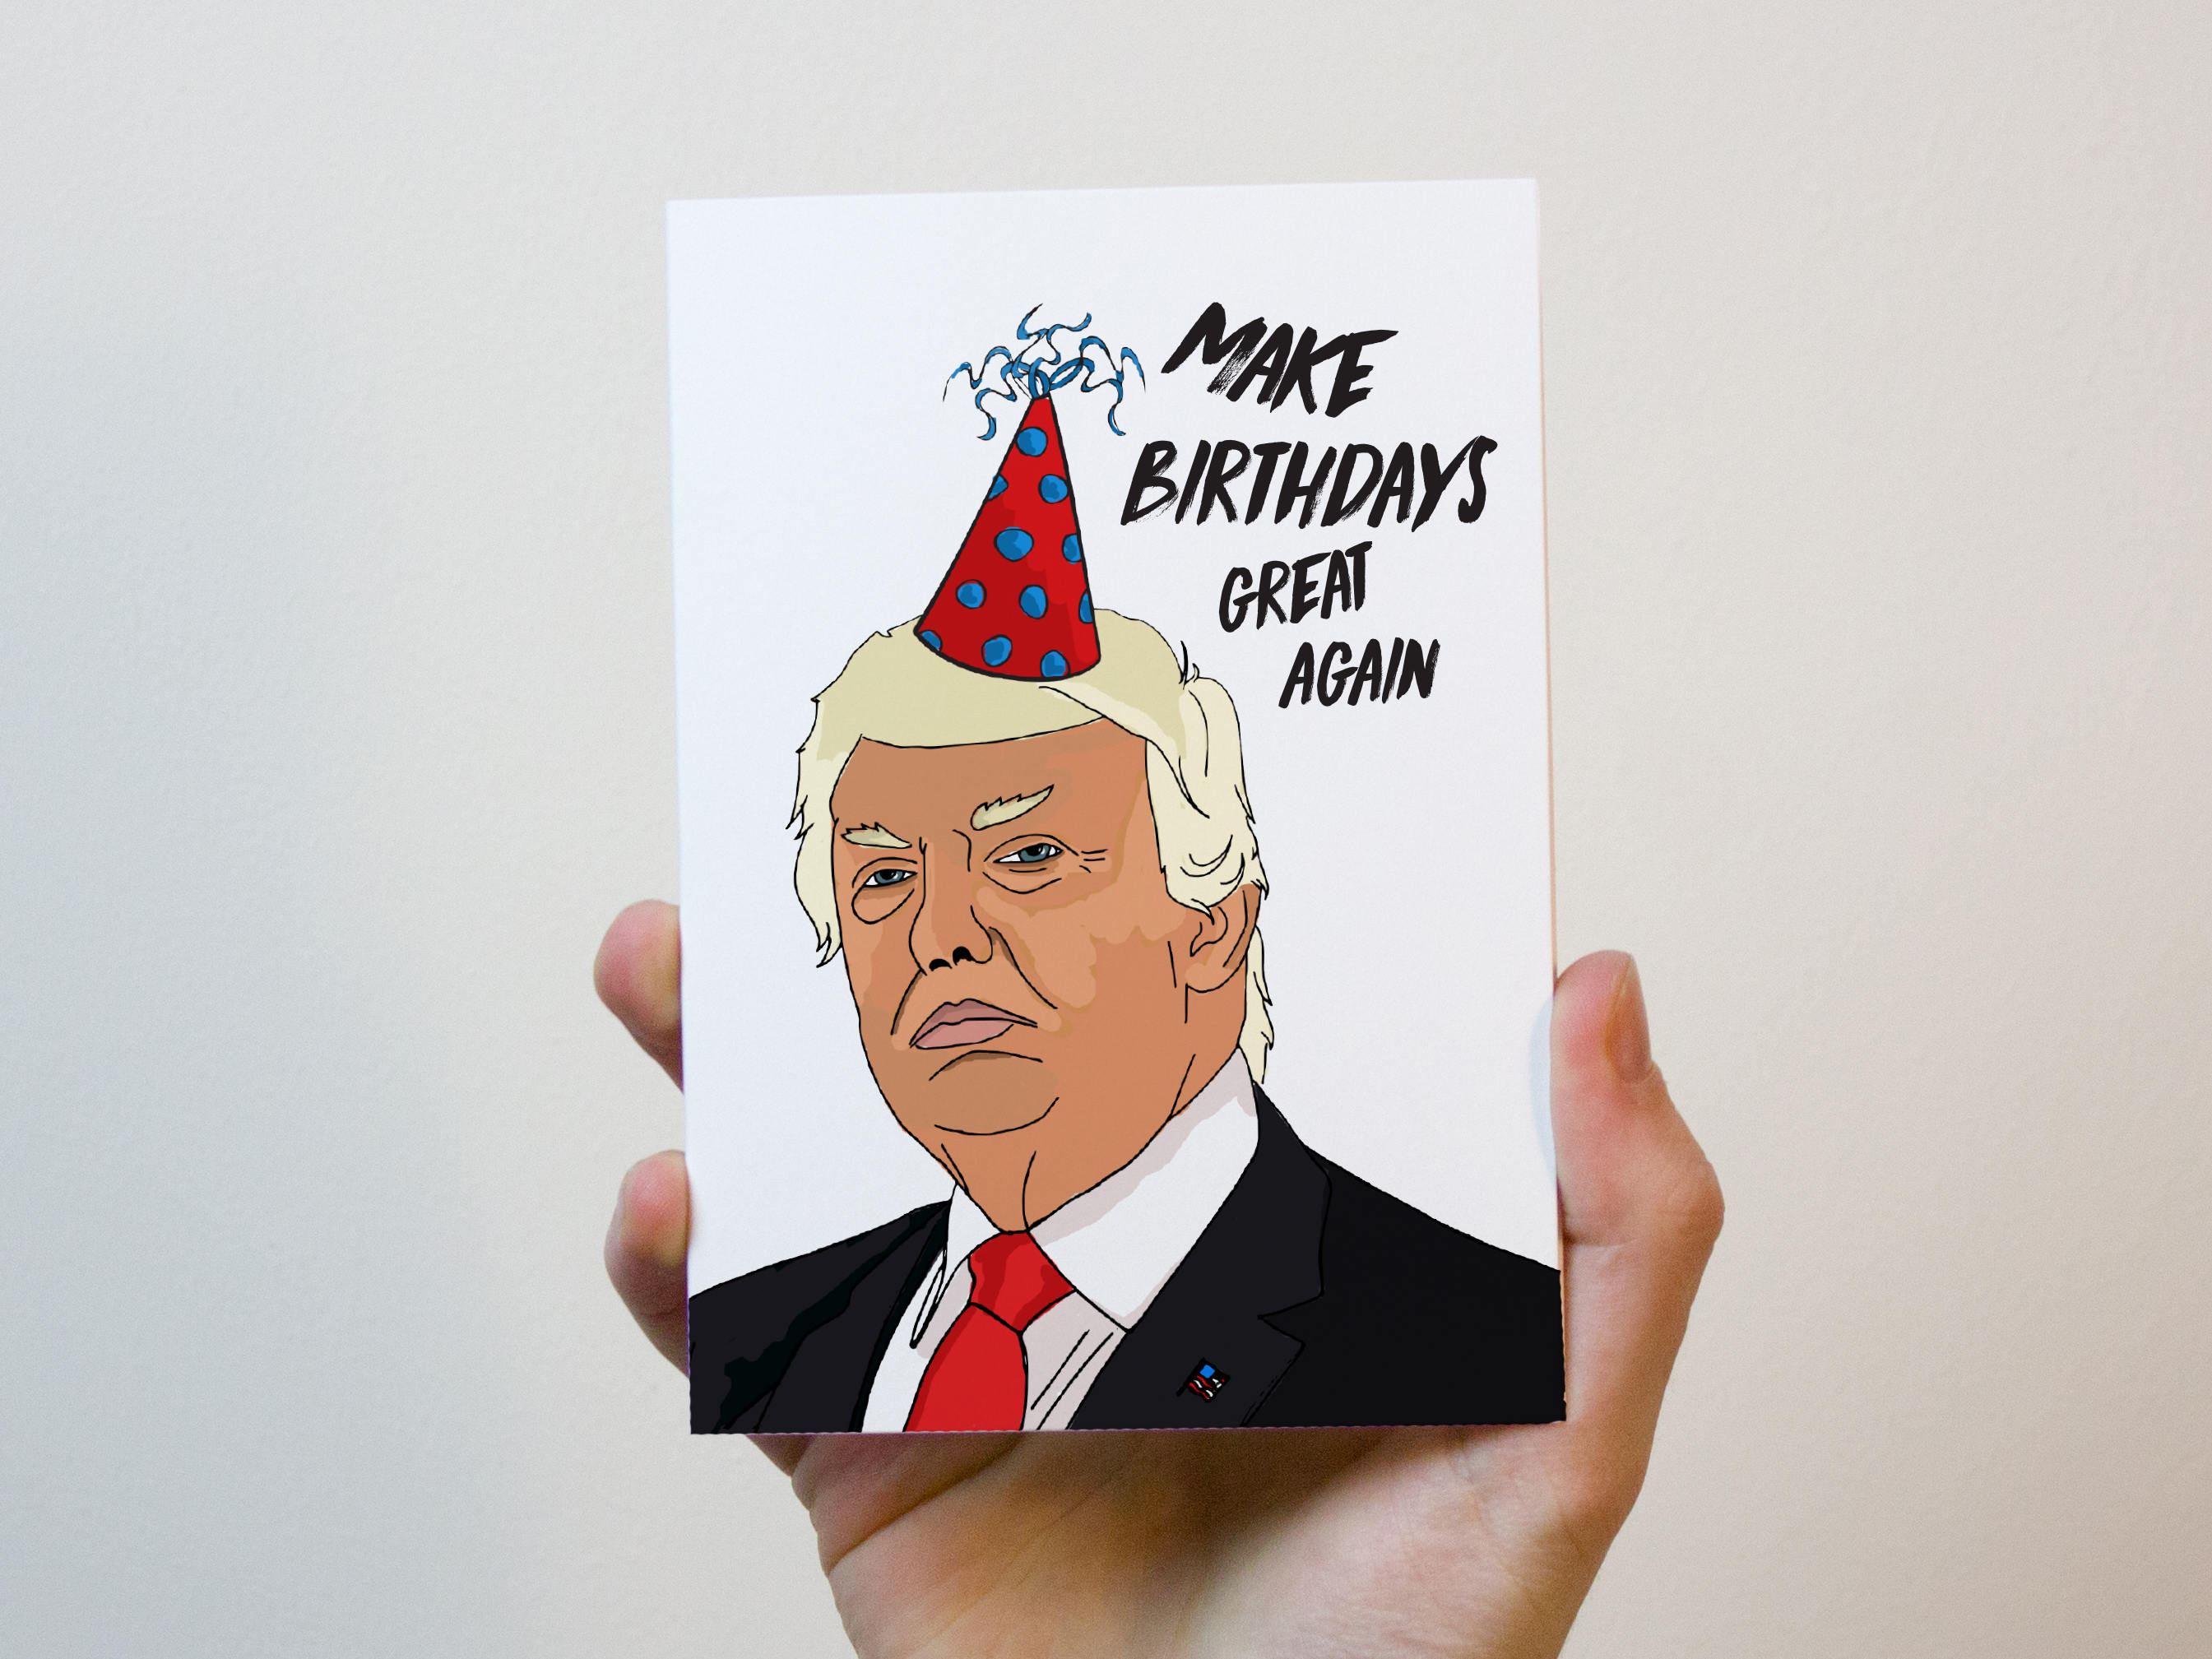 Make Birthdays Great Again